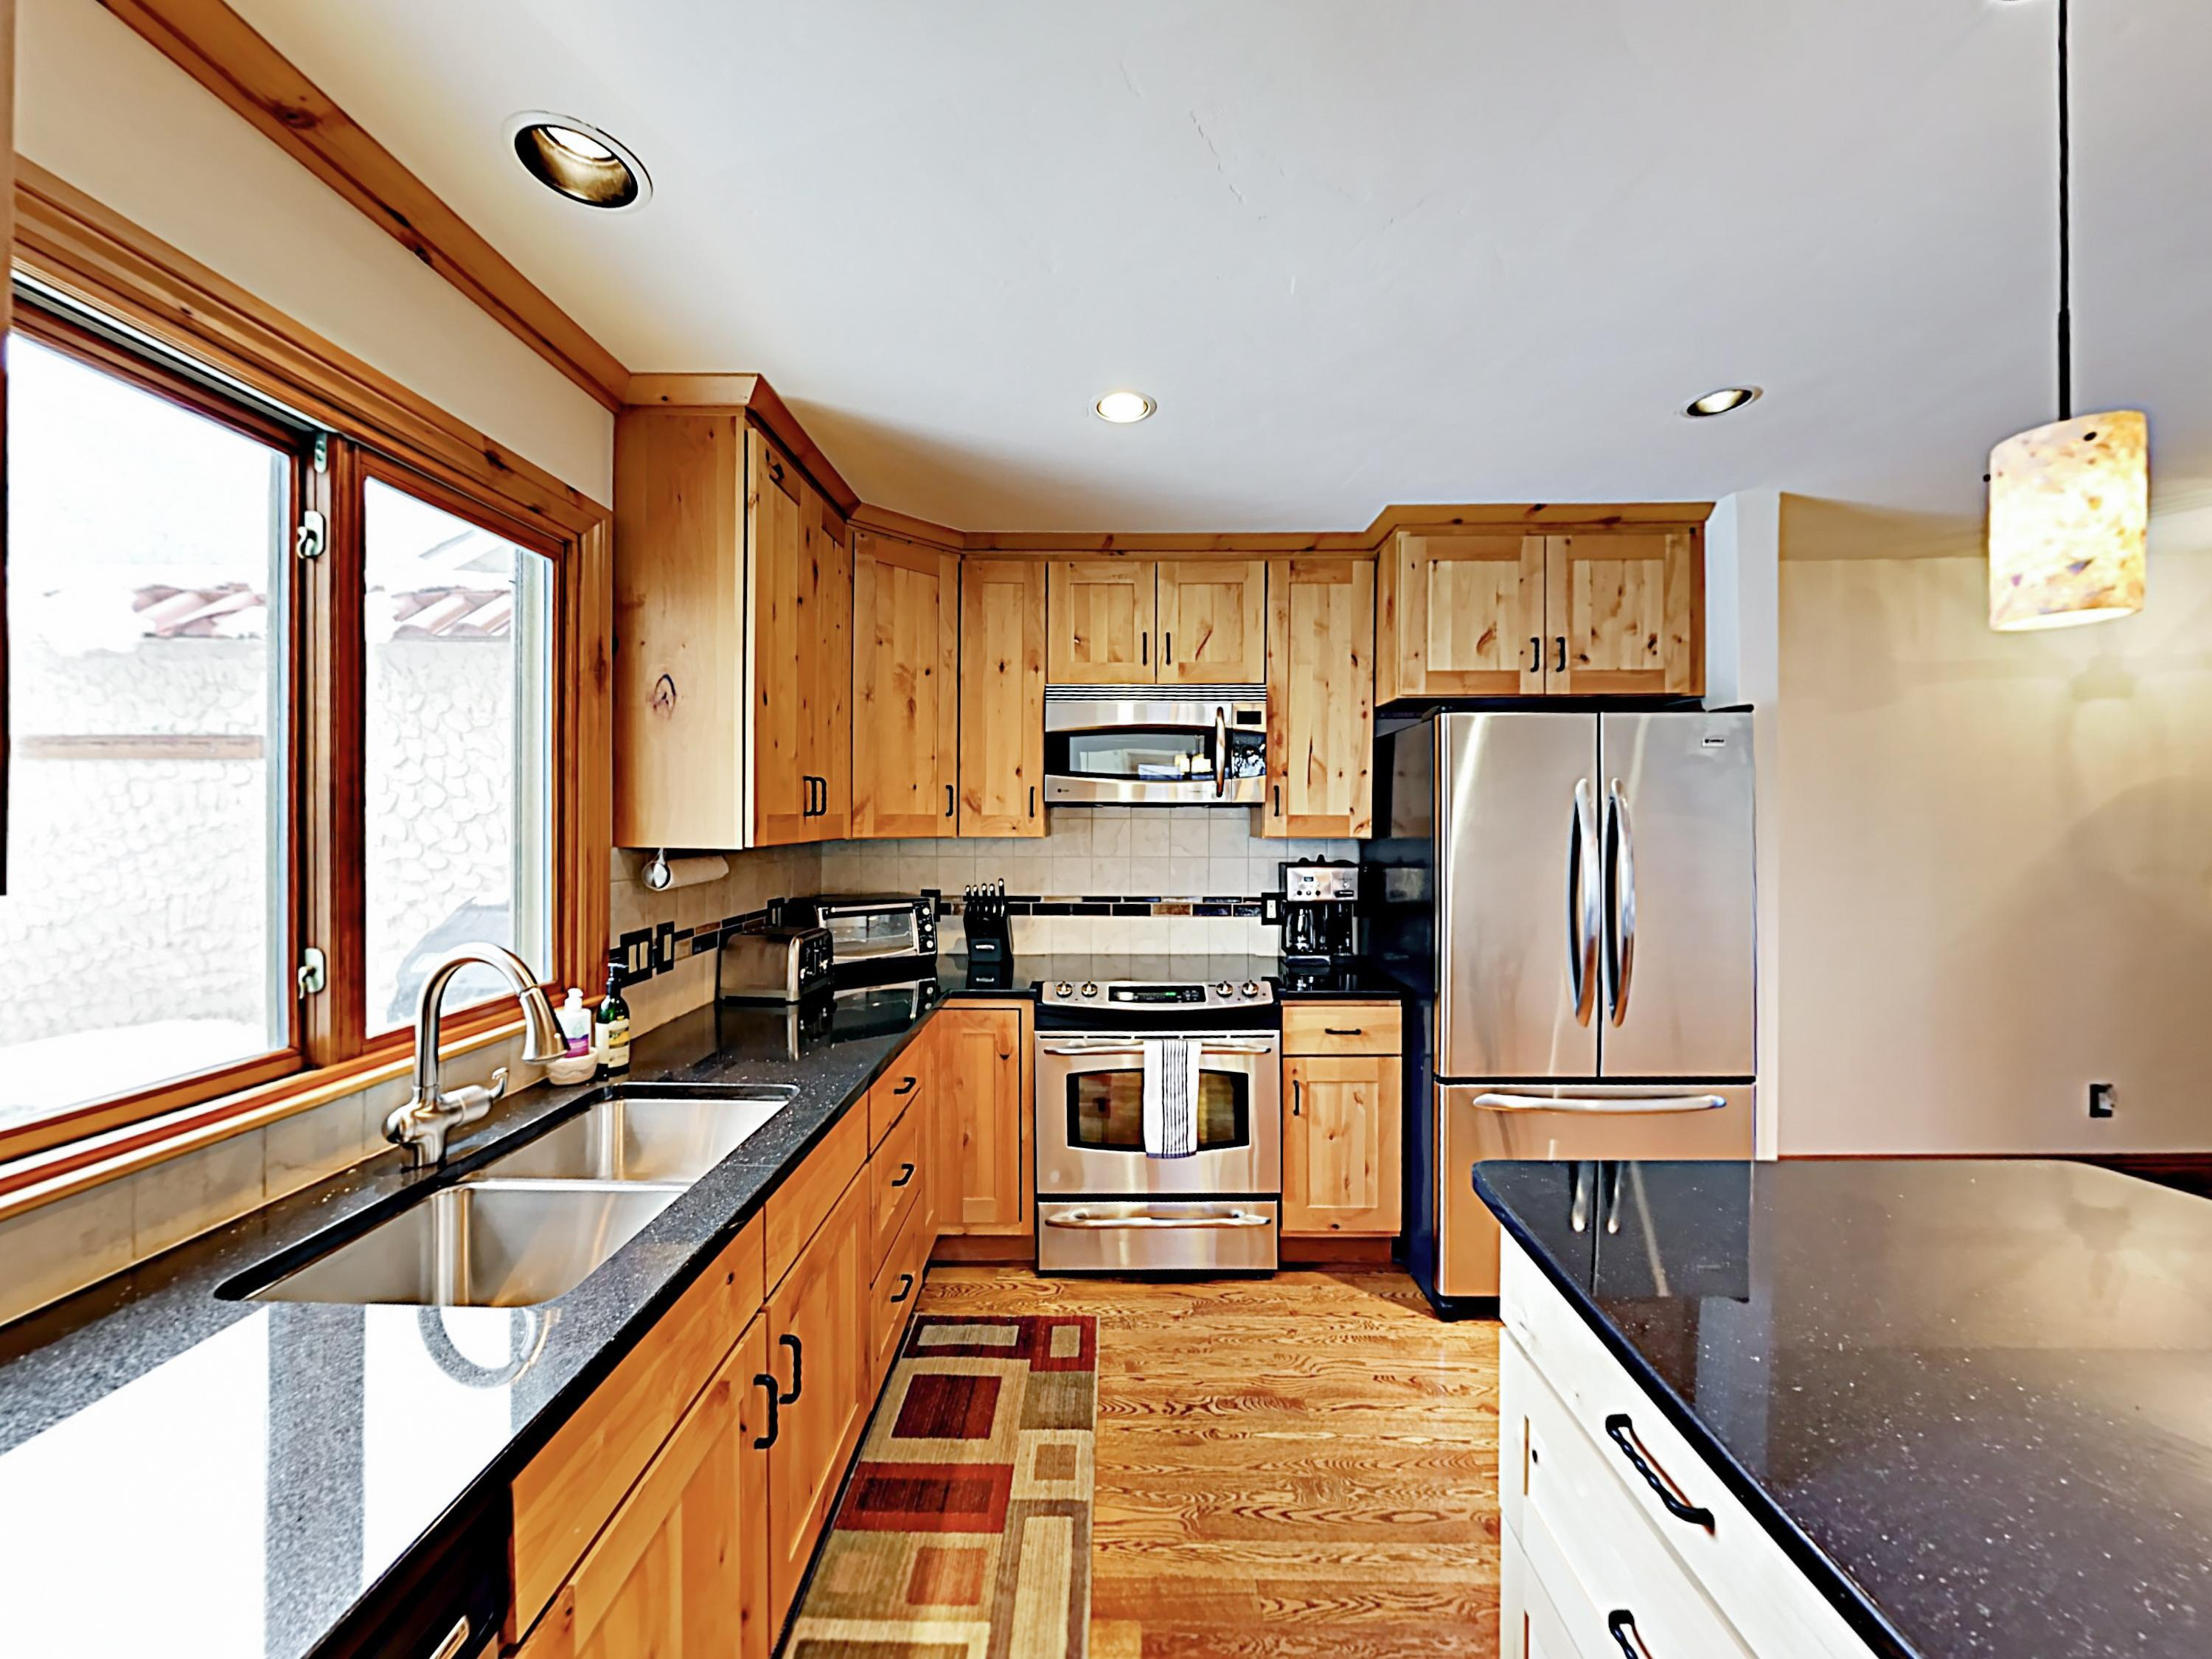 A well-equipped kitchen is outfitted with stainless steel appliances, including a  roomy French door refrigerator.